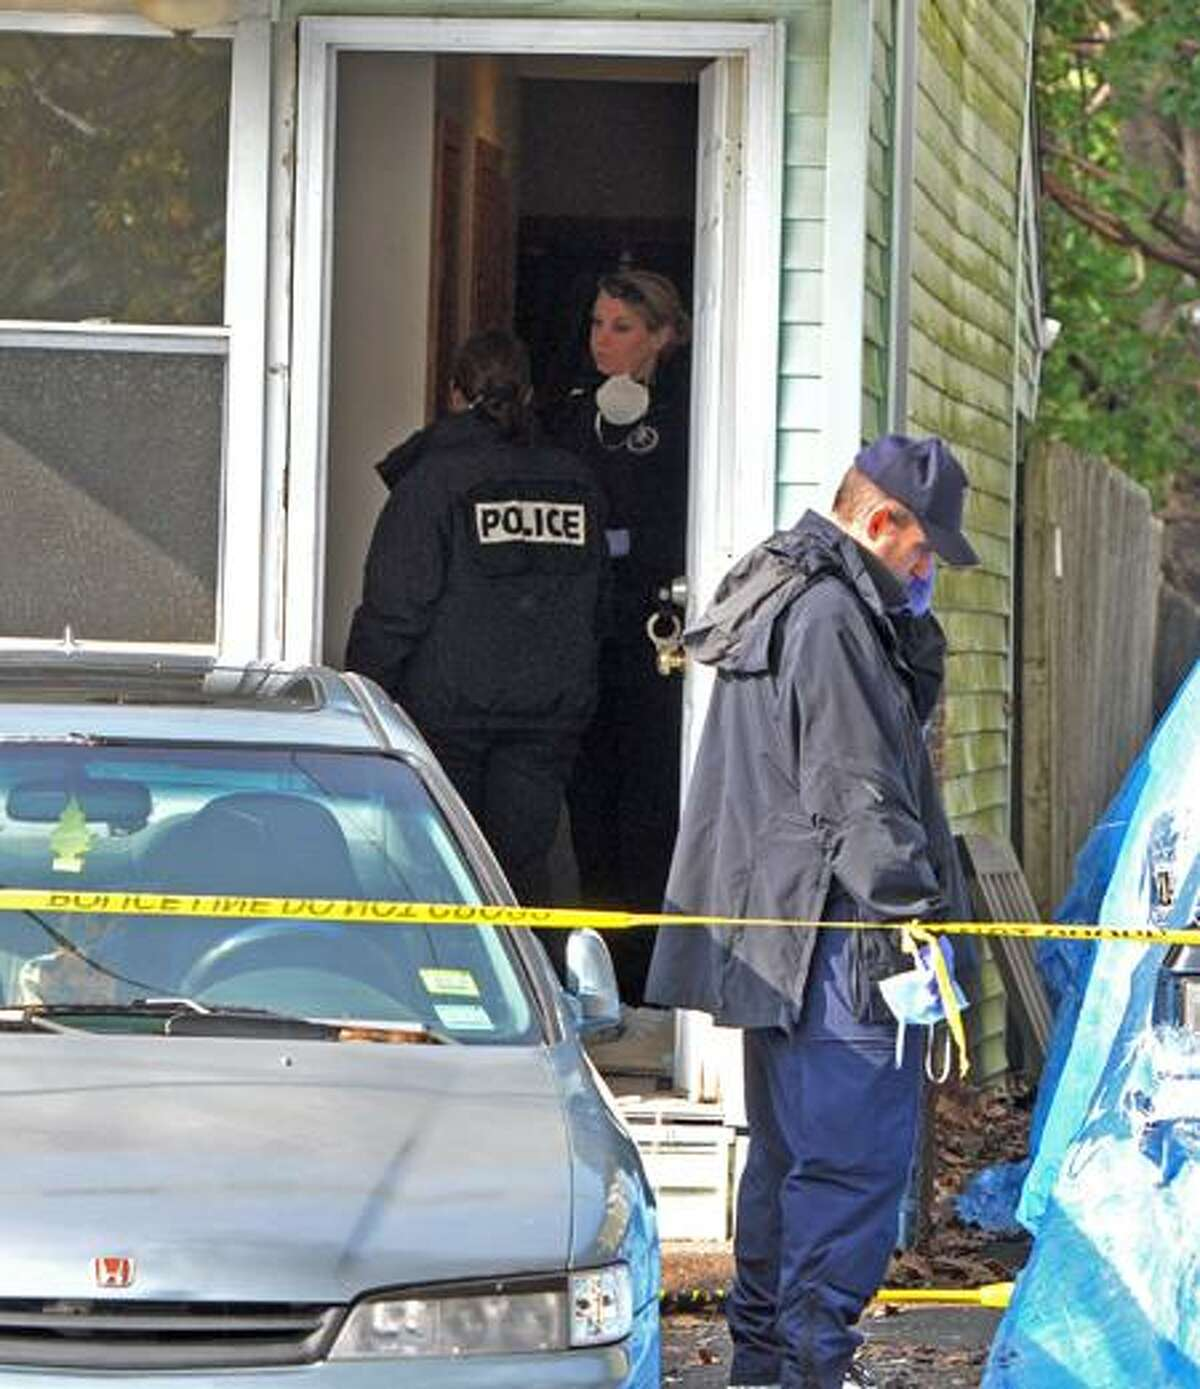 New Haven Police investigate the shooting of Marquell Banks, 13, who was fatally killed by a shotgun blast while in an apartment at 154 Porter St. in New Haven Sunday night. (Peter Hvizdak/Register)